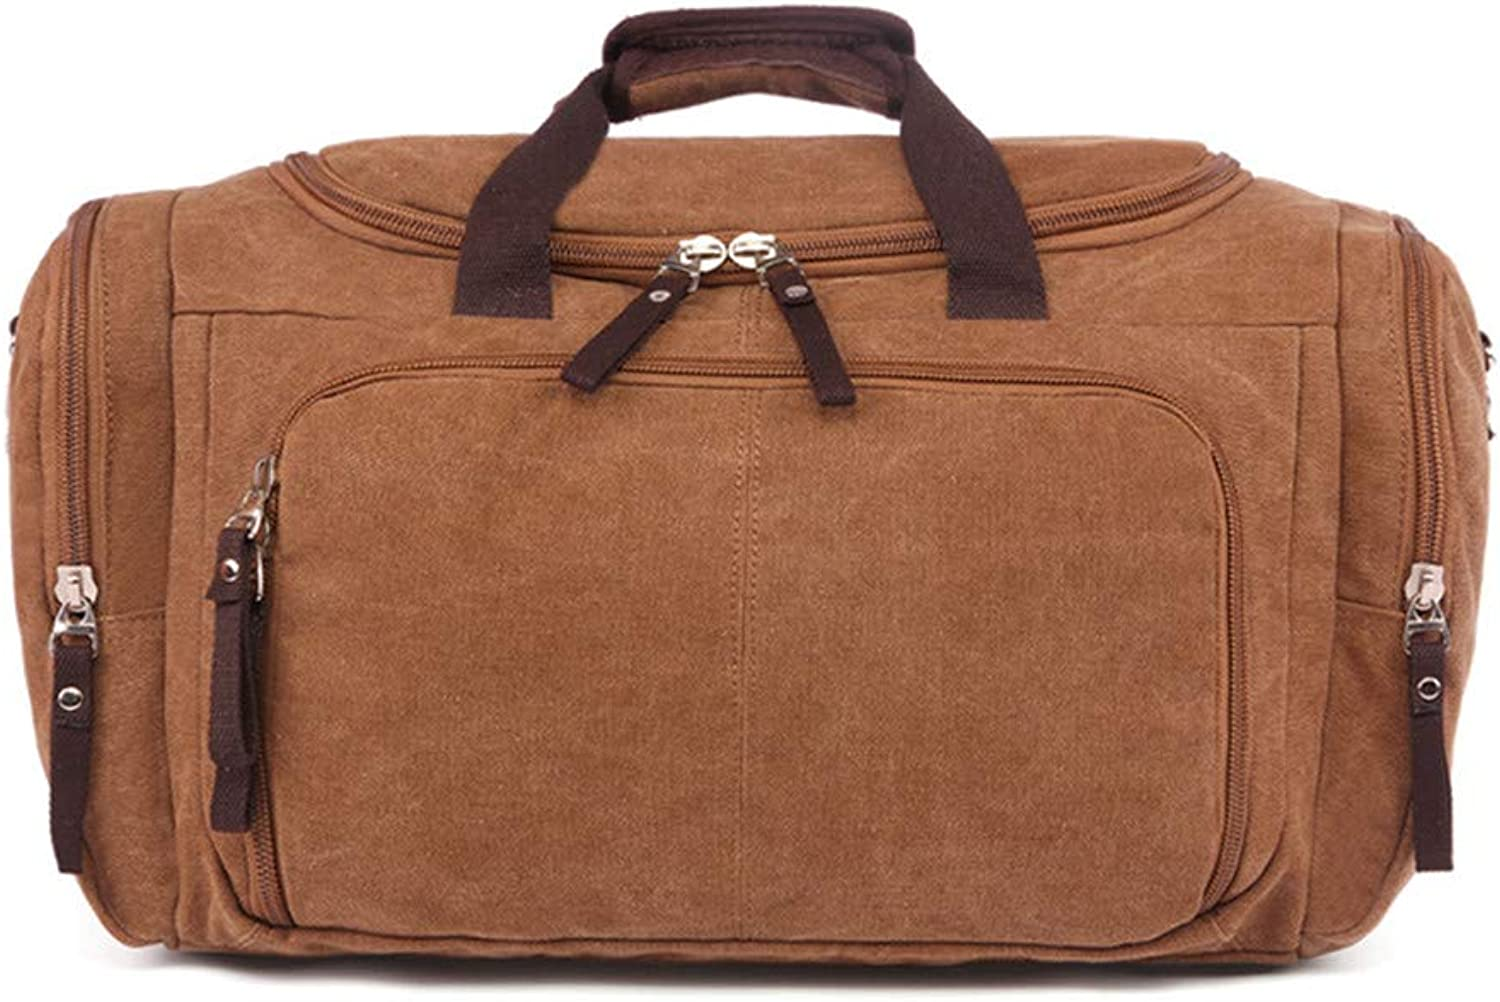 Travel Weekender Shoulder Bags Large Capacity Canvas Portable Weekend Overnight Travel Bag Sports Handbag Shoulder Bags for Men and Women Men's Weekender Duffle Bag (color   Coffee)